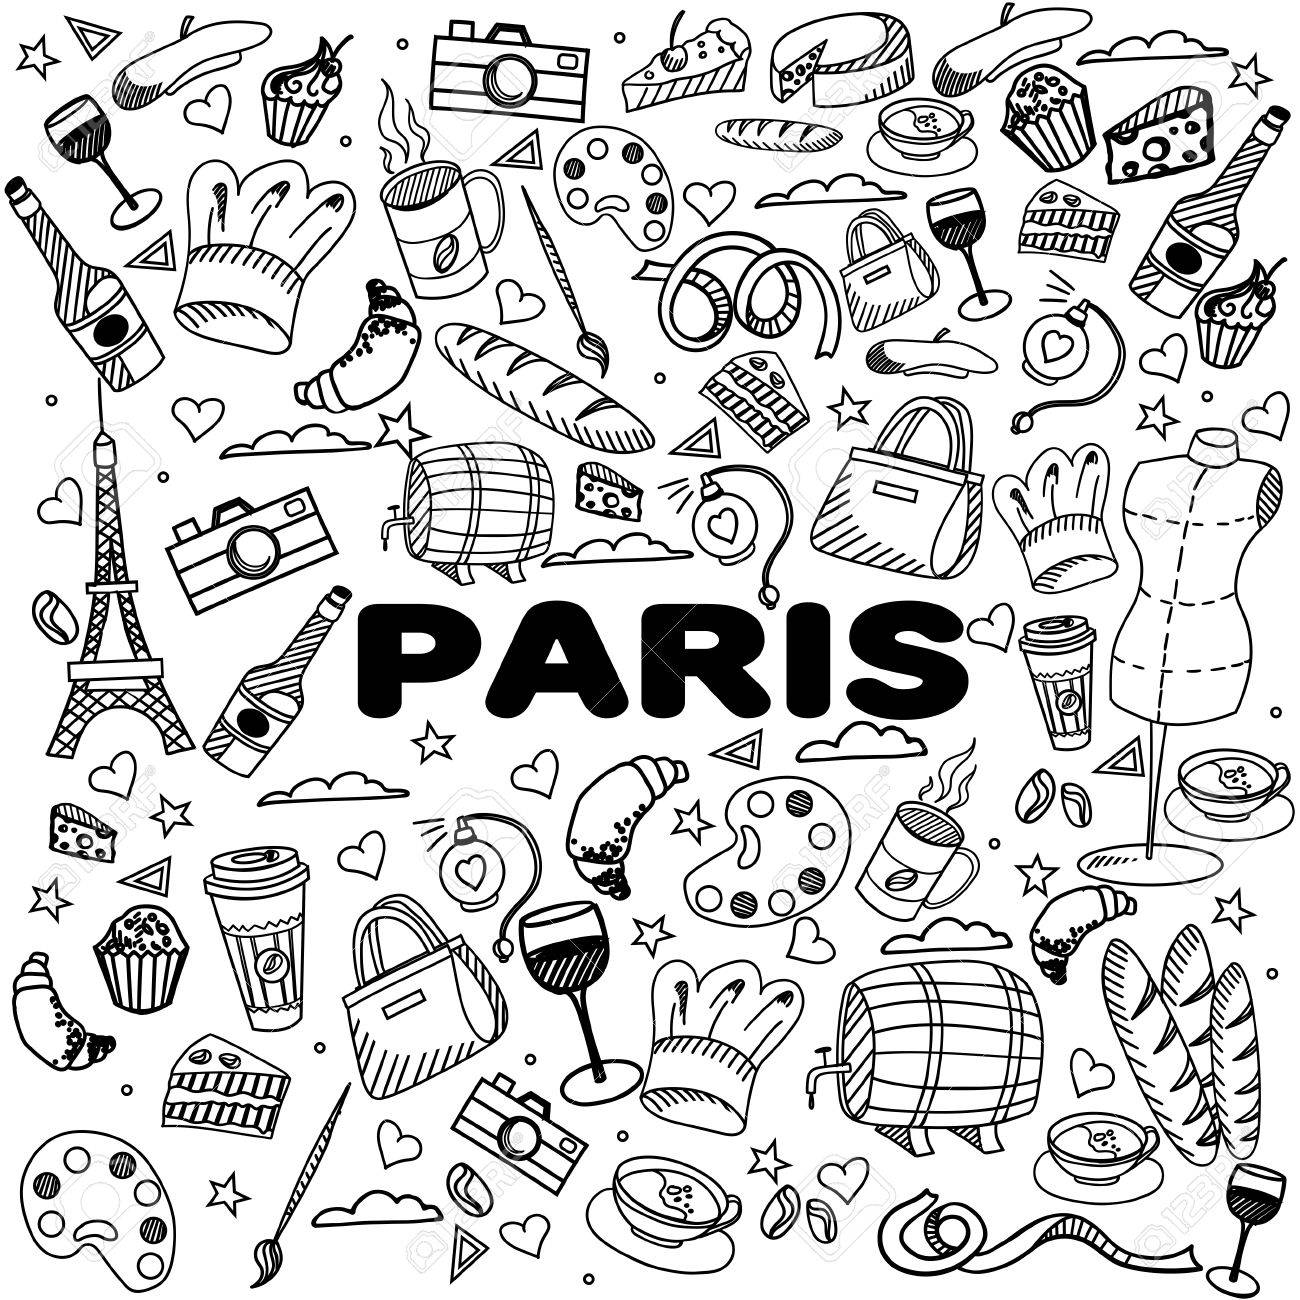 Paris Coloring Book Line Art Design Vector Illustration. Separate ...